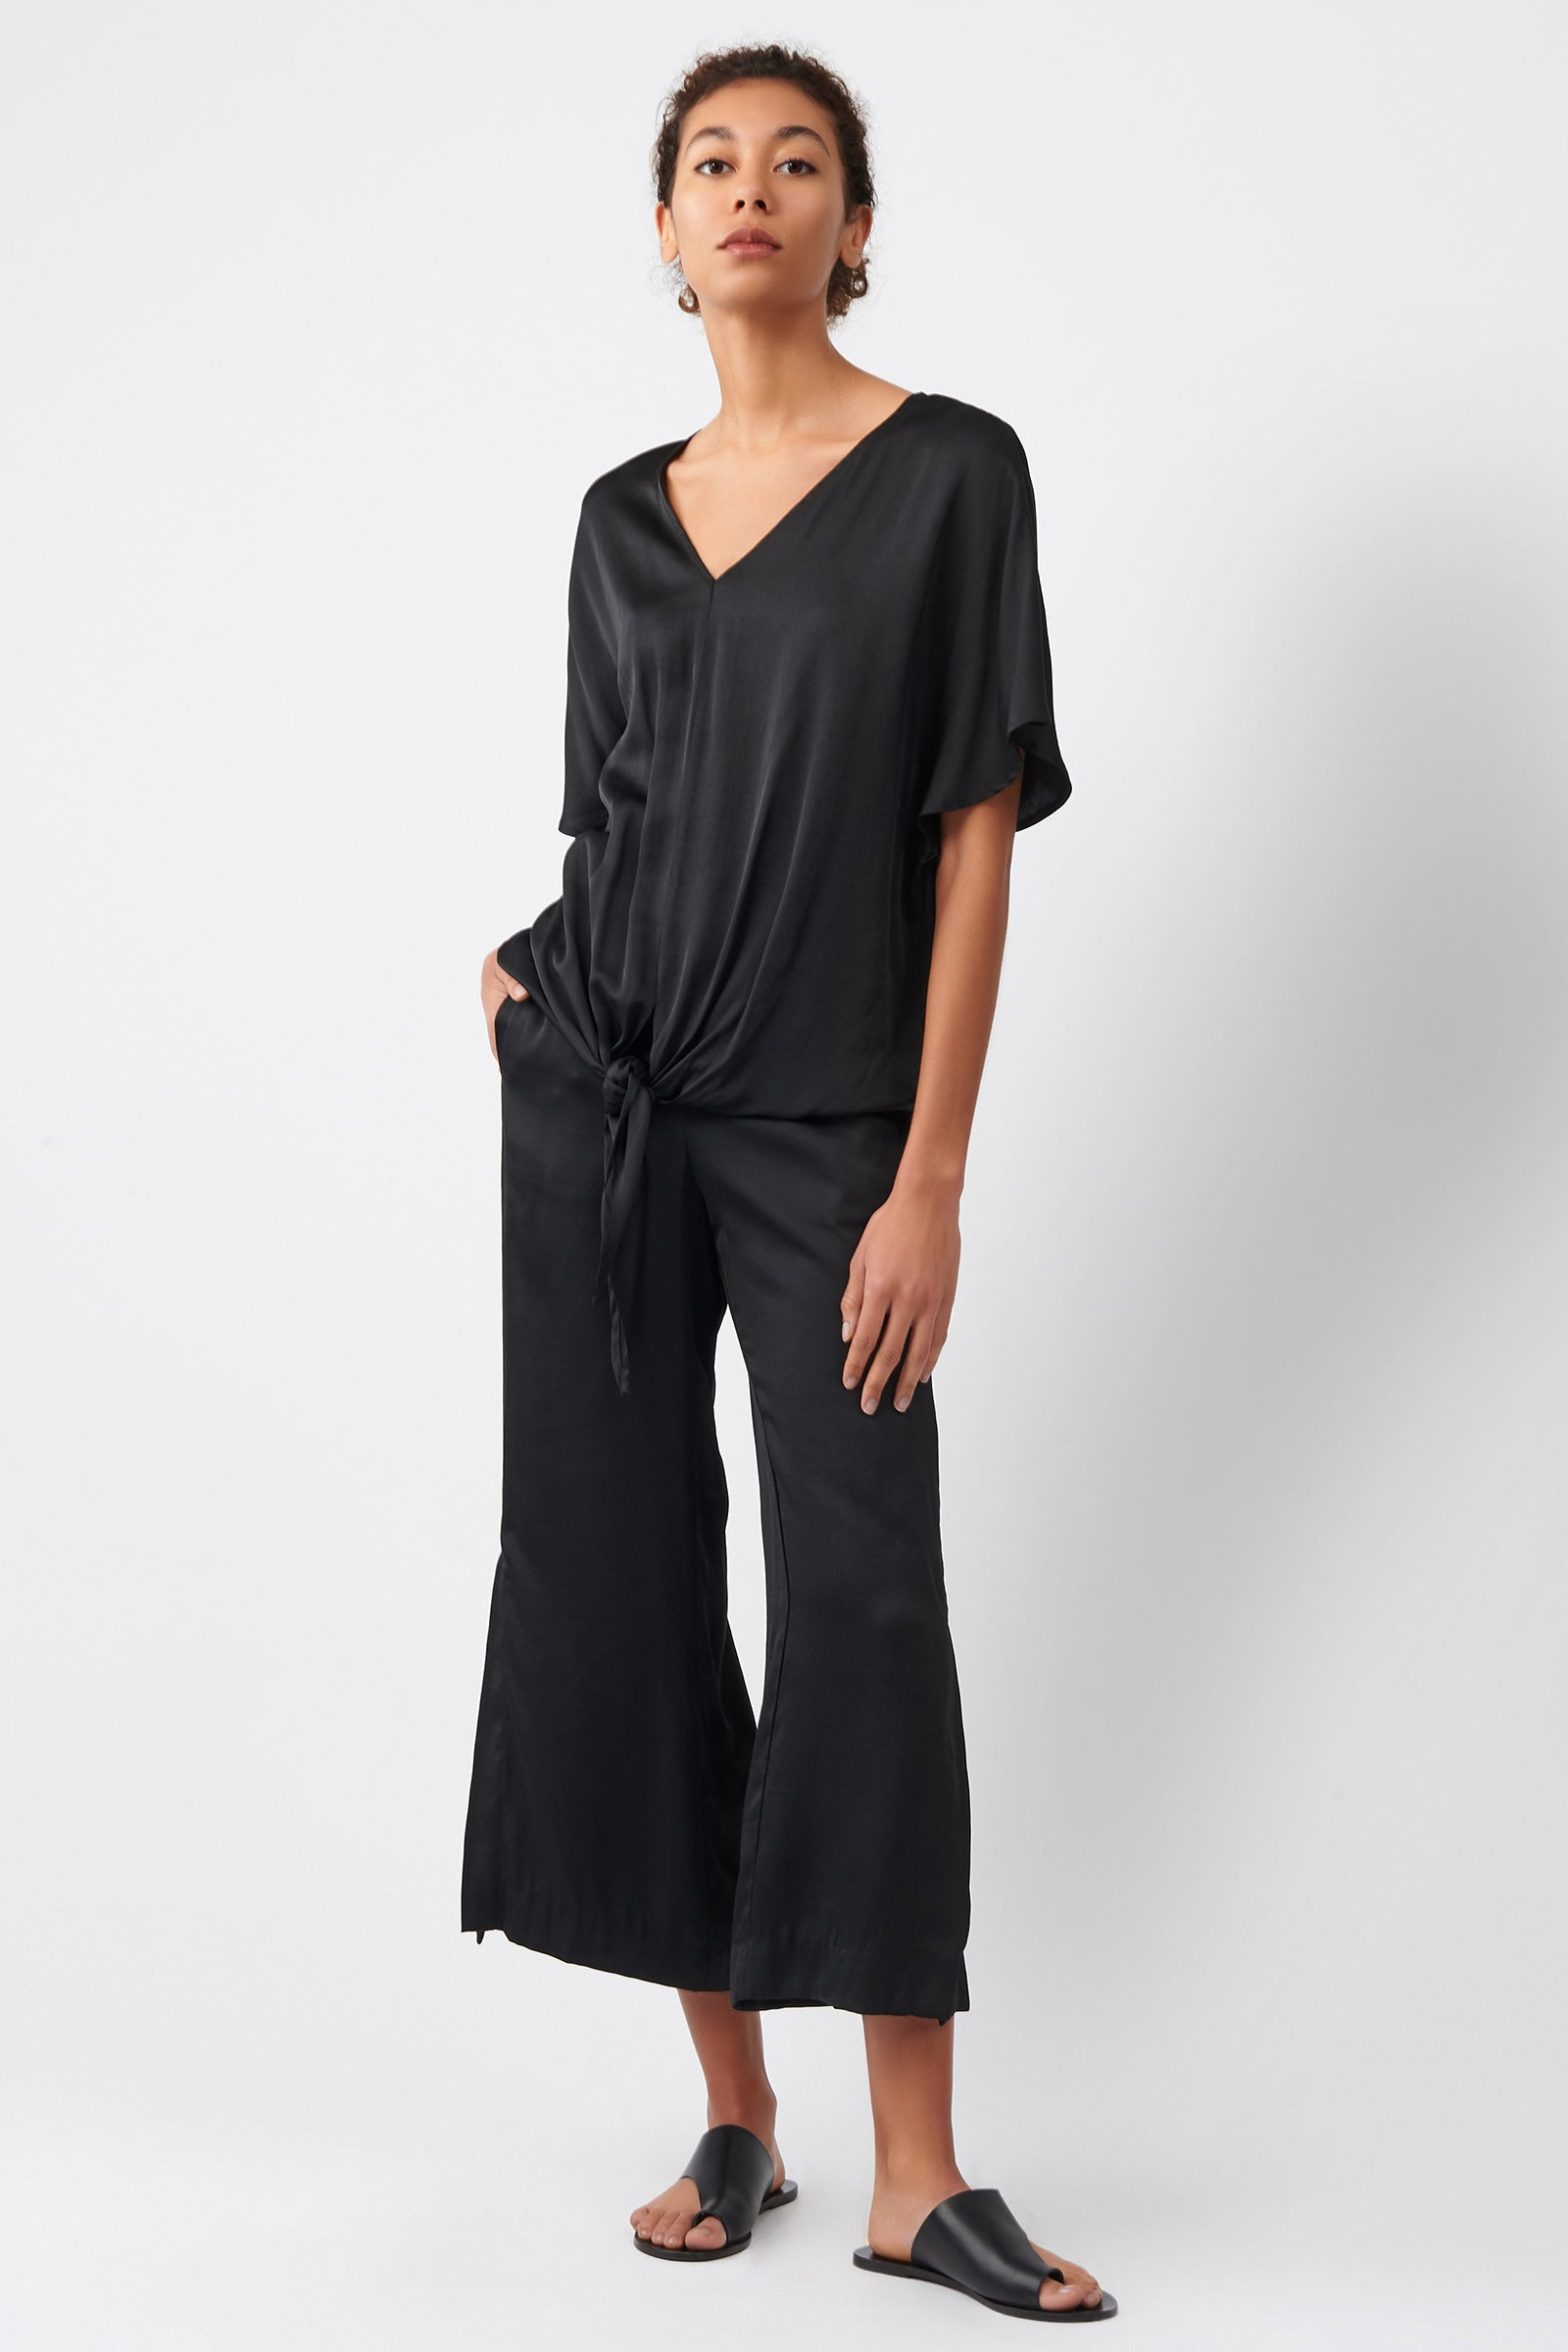 Kal Rieman Tie Front Top in Black on Model Full Front View